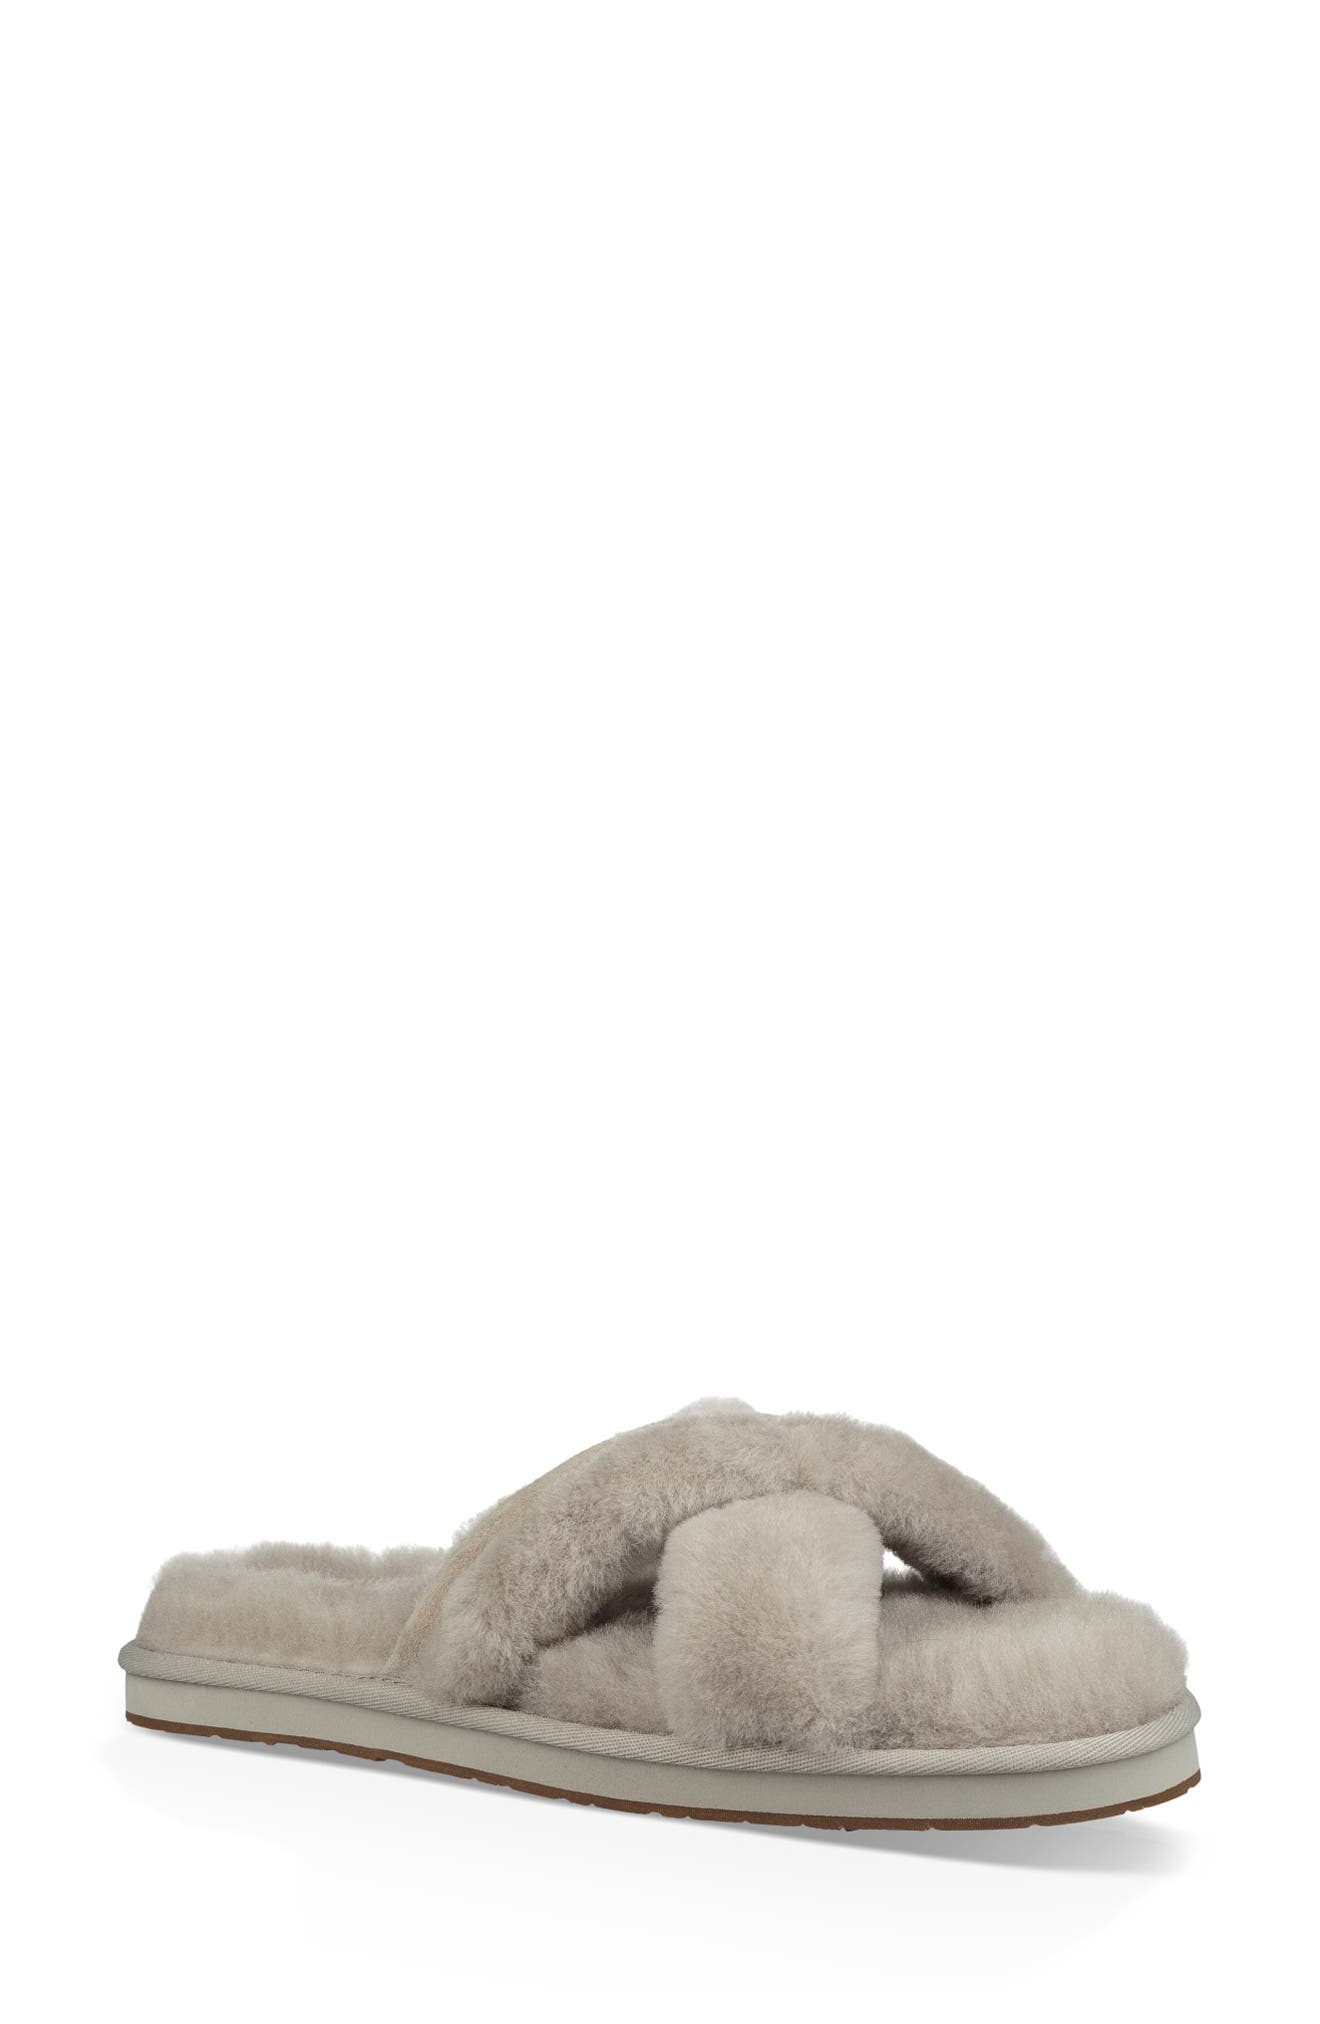 Abela Genuine Shearling Flip Flop,                             Main thumbnail 1, color,                             WILLOW WOOL